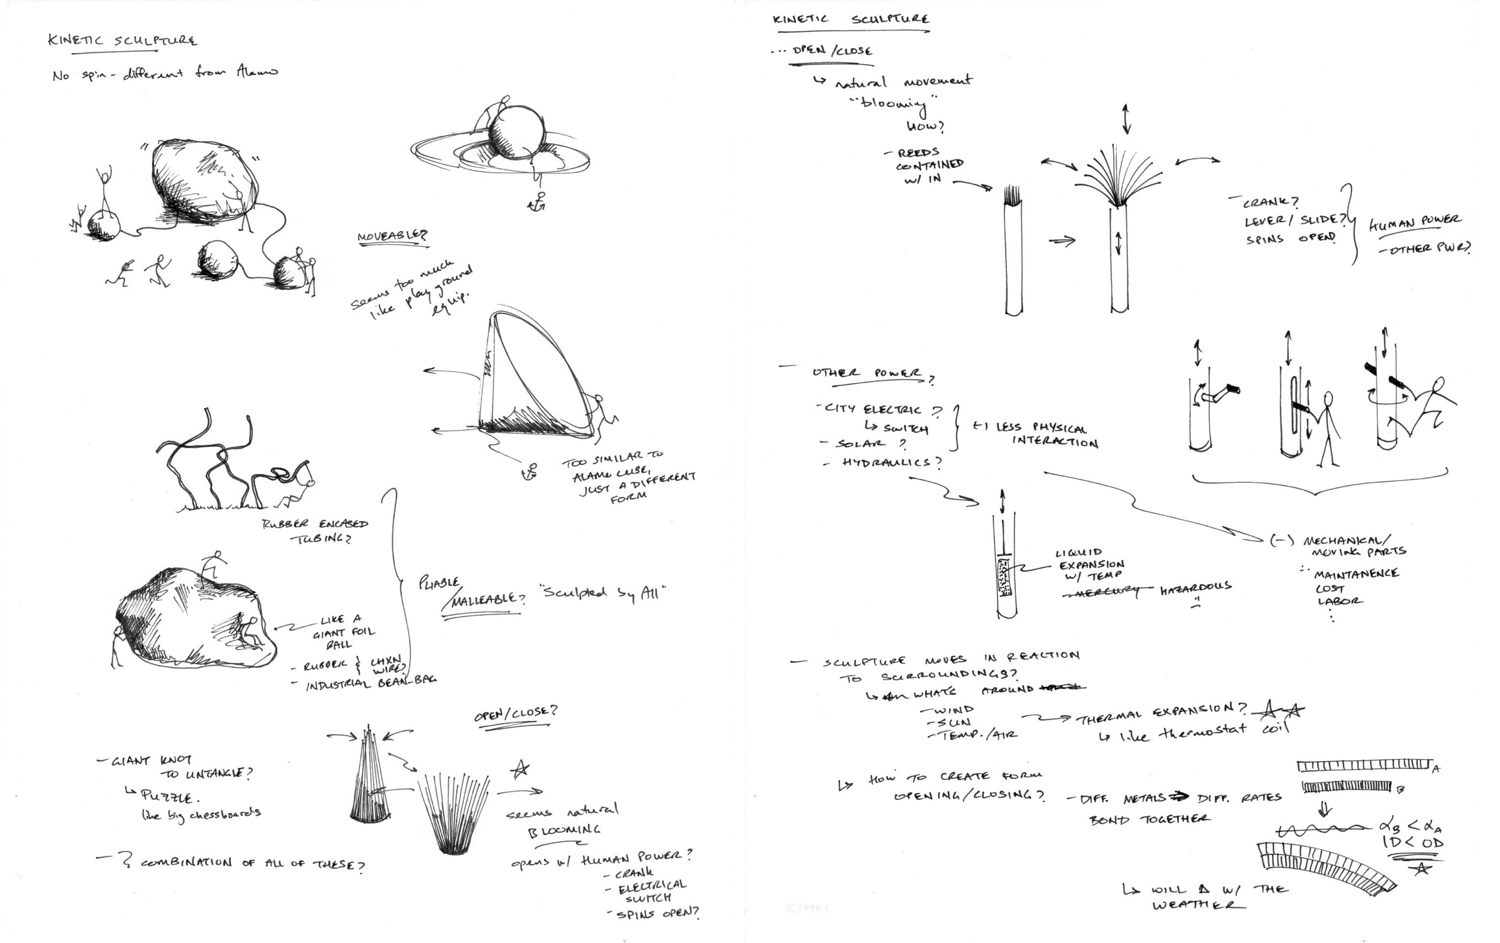 Logbook Sketches   Starting with ideas for engagement/movement and eventually getting to the idea of using thermal expansion.